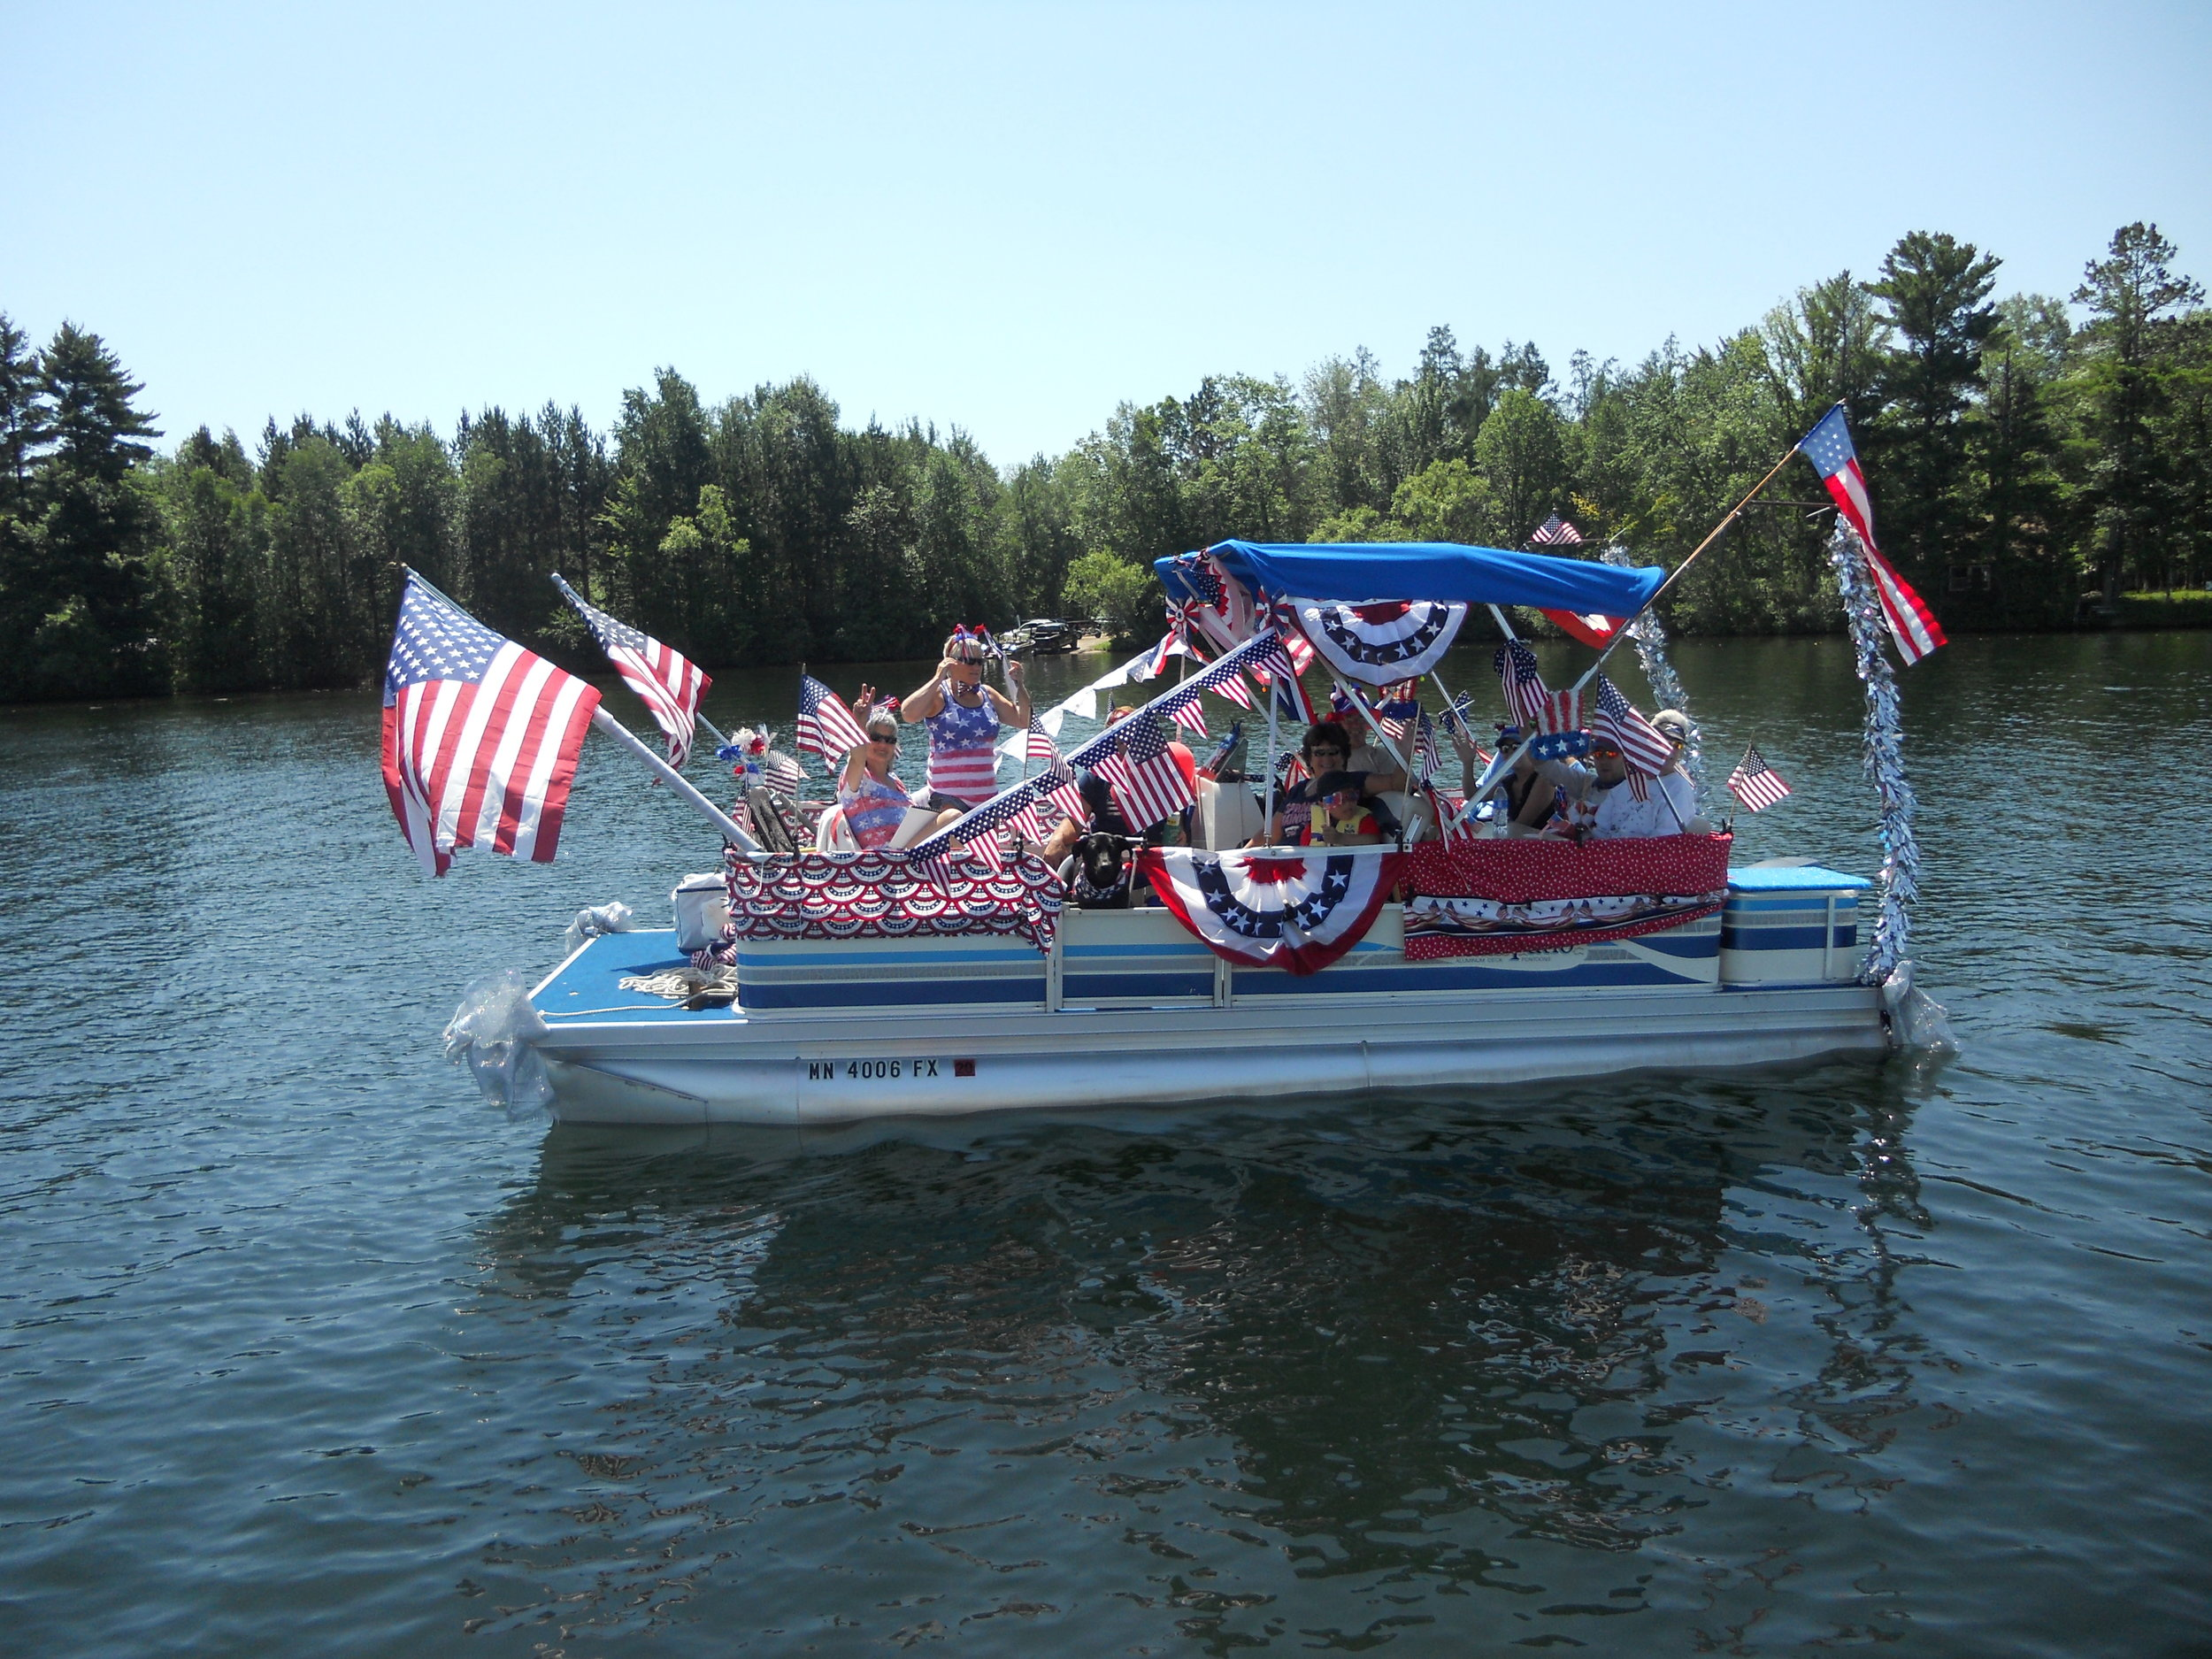 Pontoon – Decker/Sanford – Lot 123 The Red, White and Blue